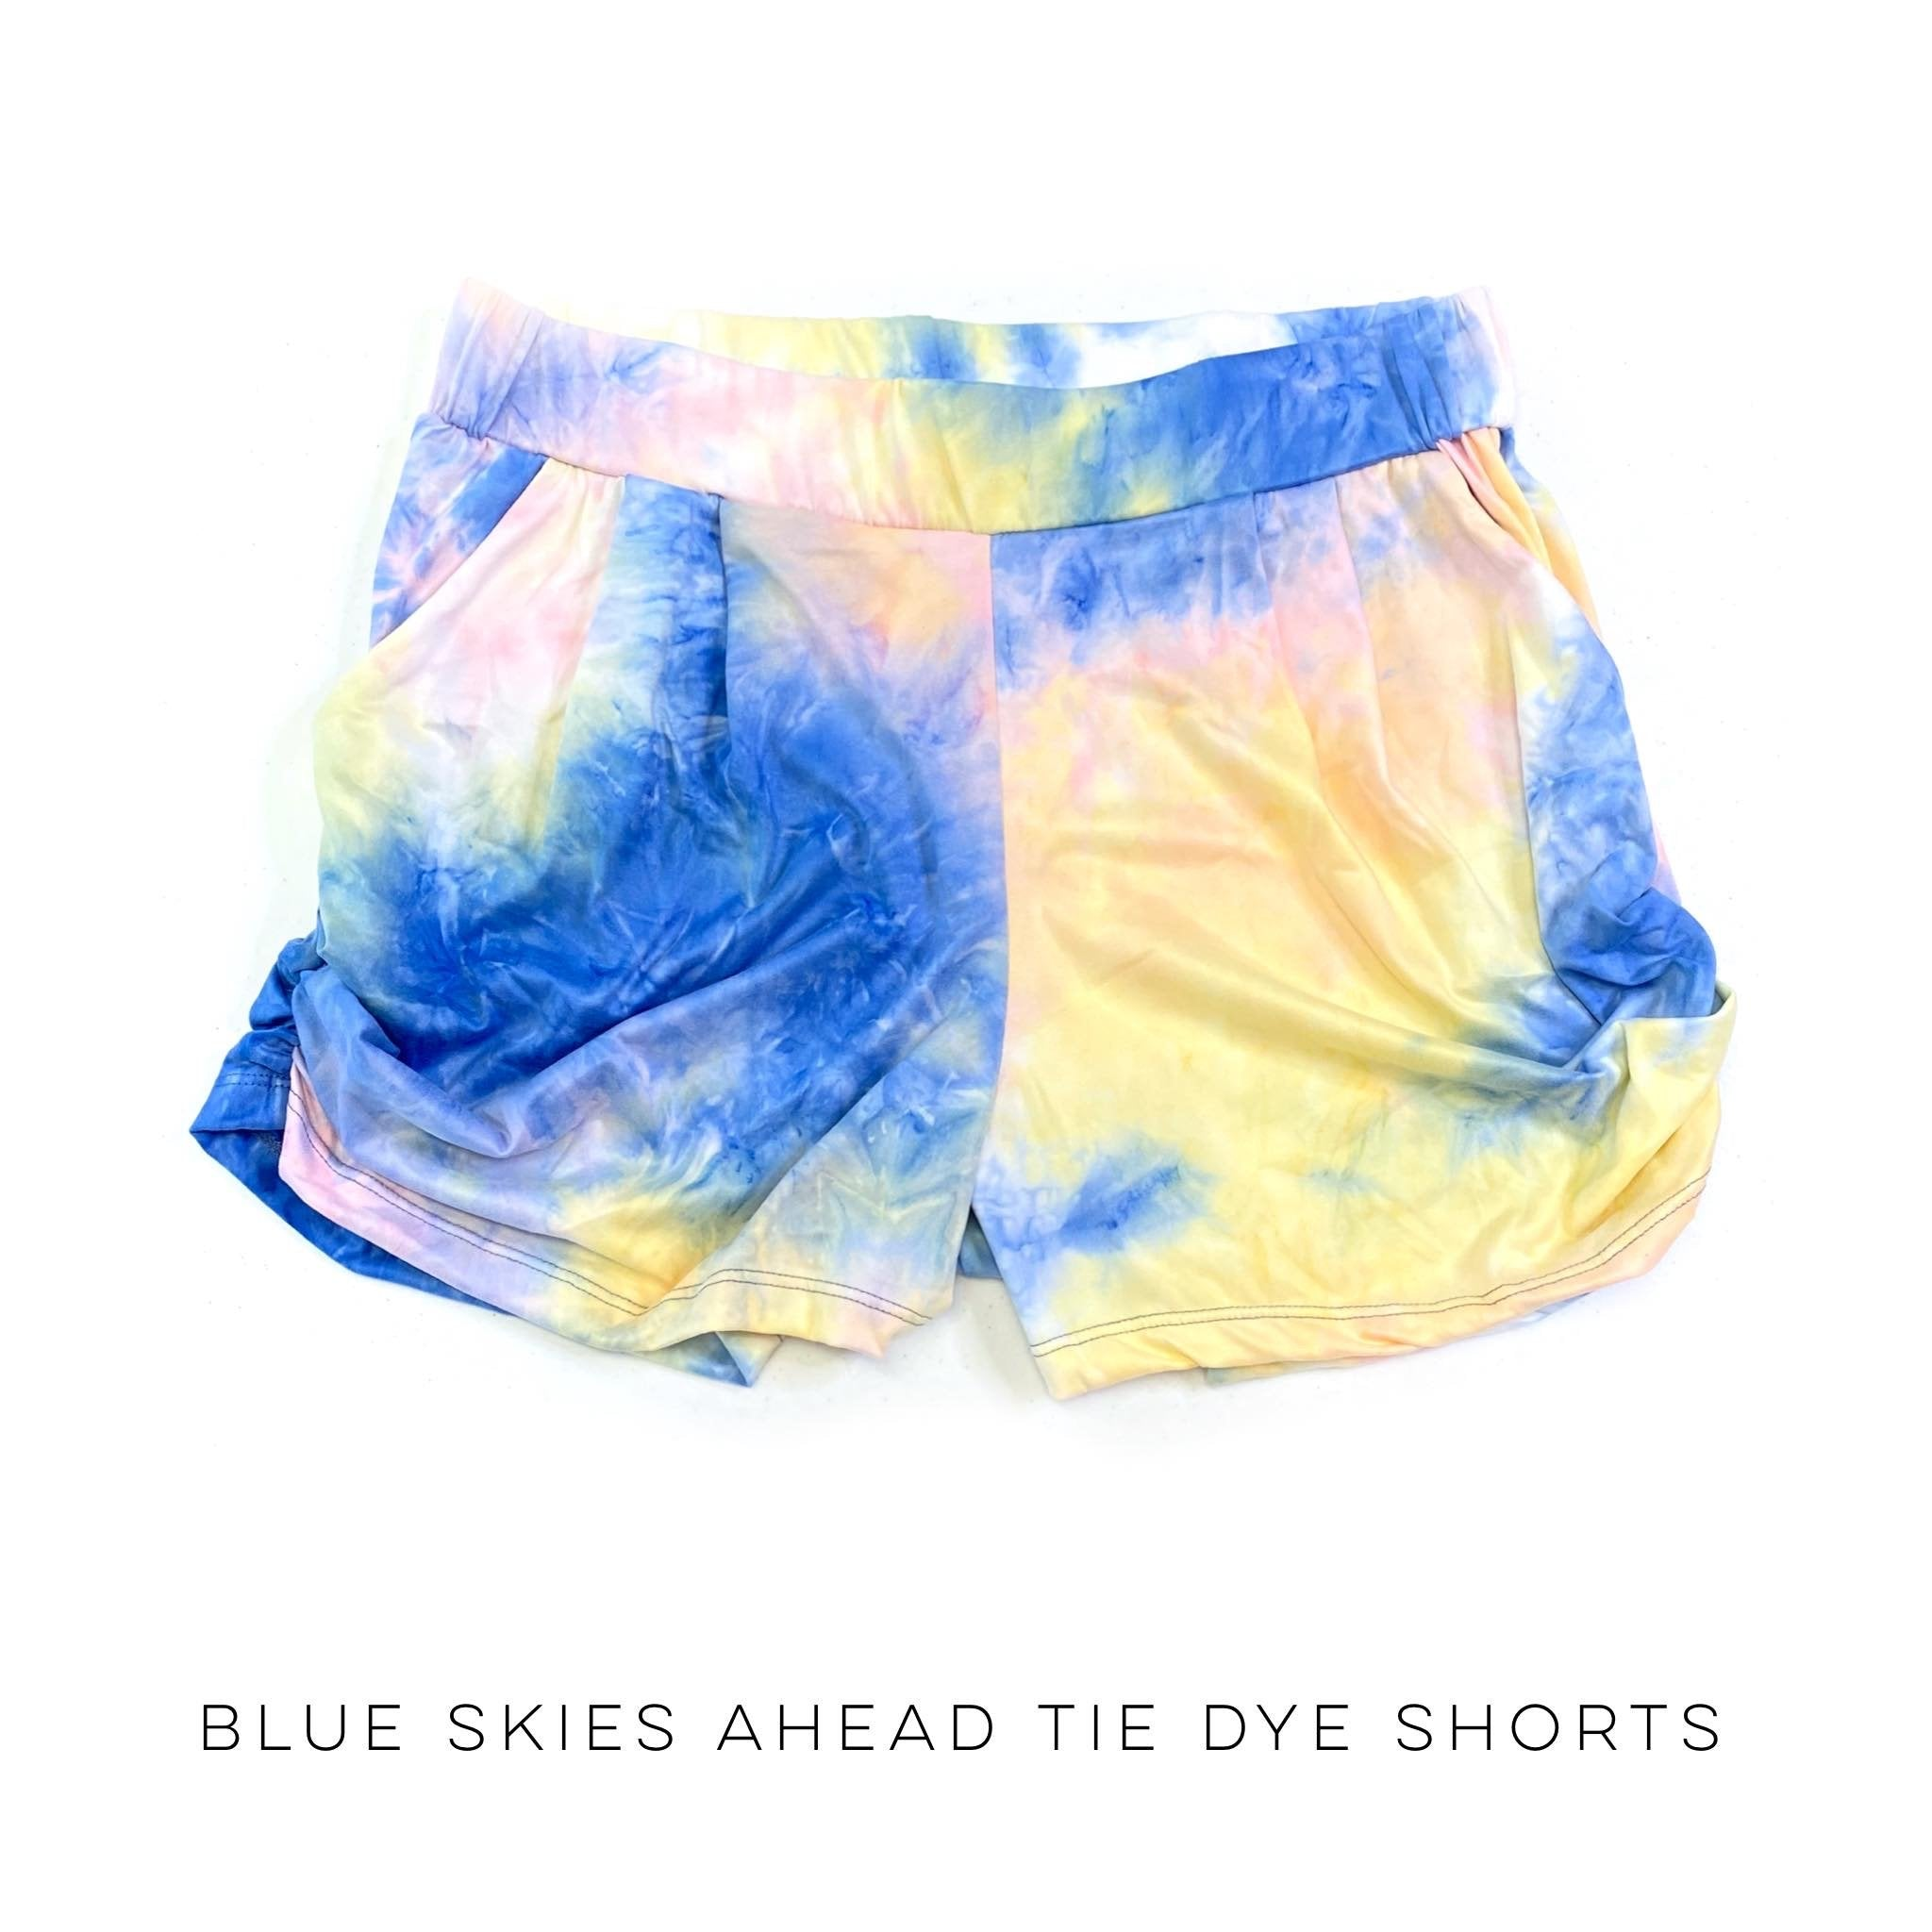 Blue Skies Ahead Tie Dye Shorts